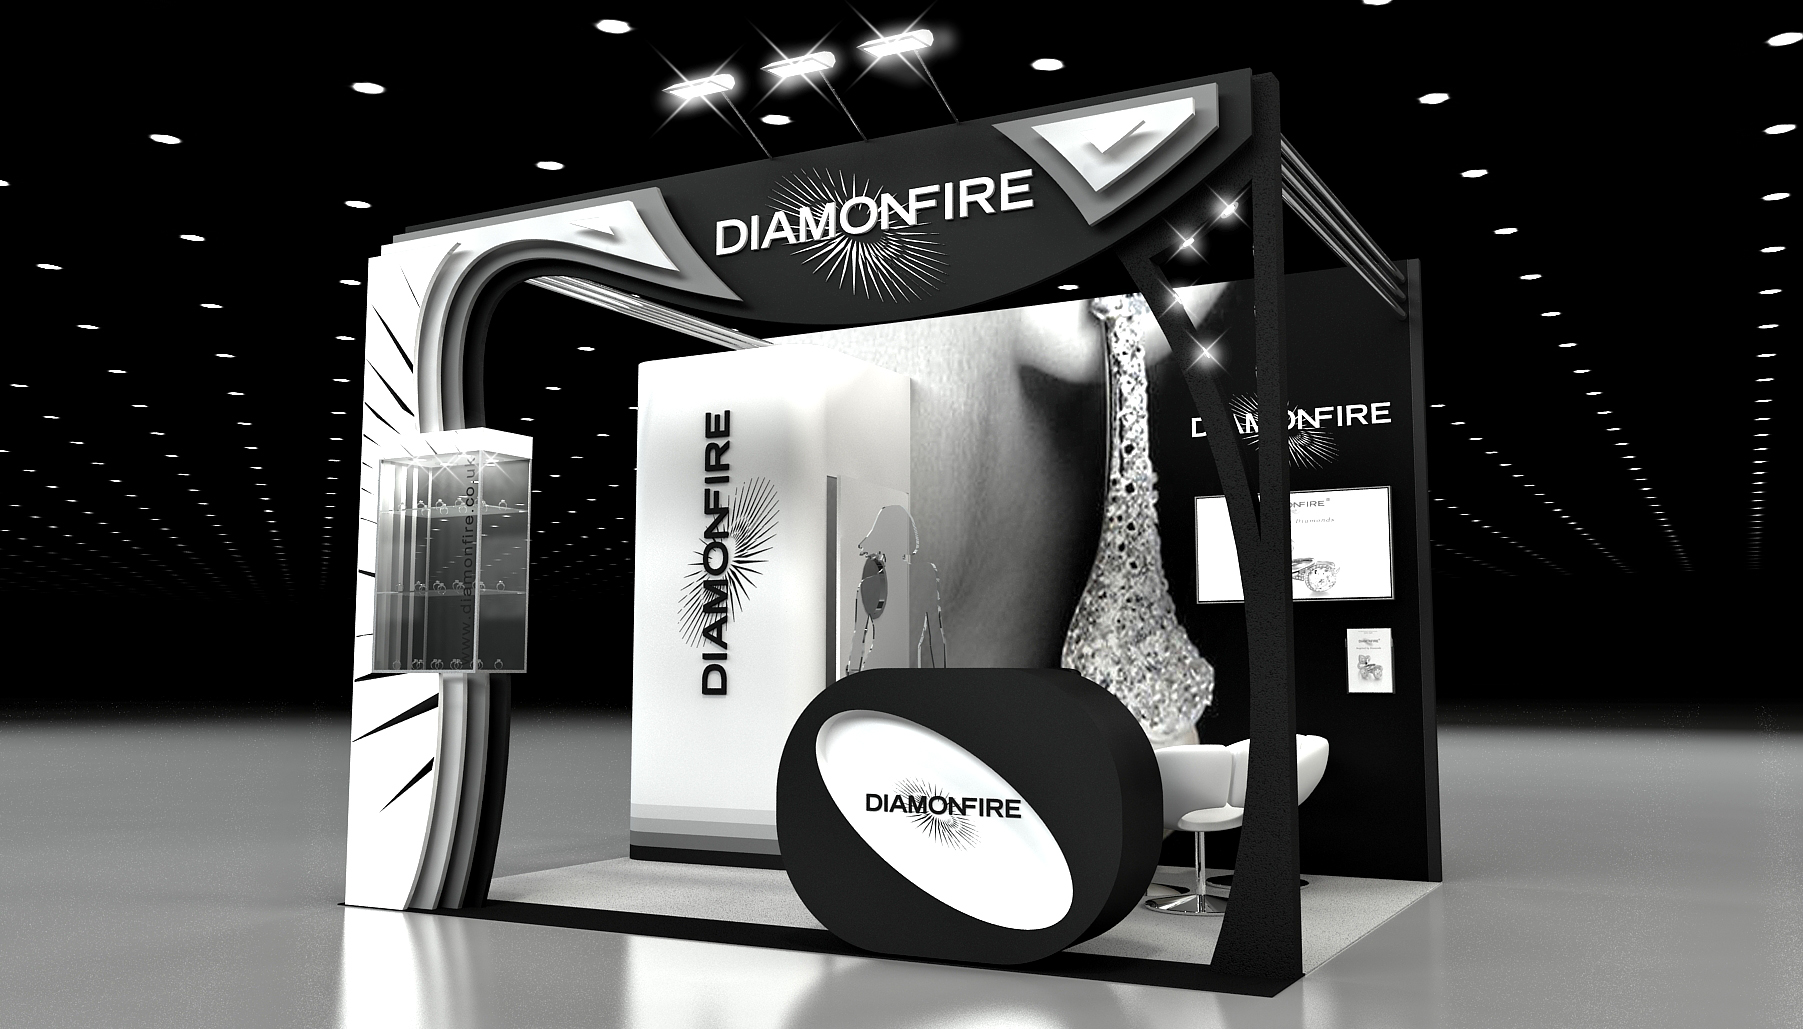 DiamonFire - 3 open sides.jpg